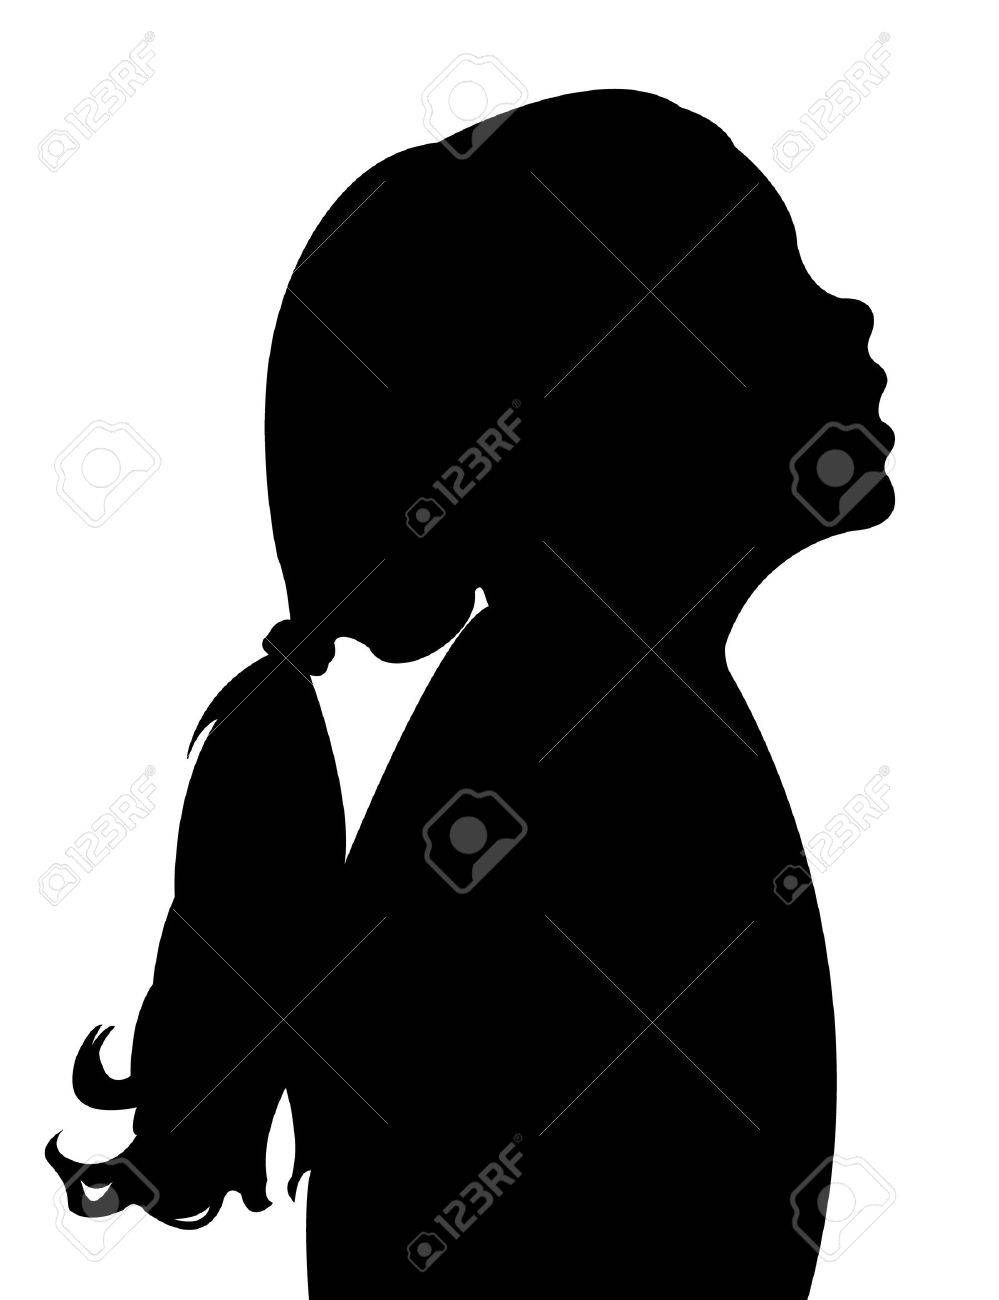 Child head silhouette clipart vector library download Stock Vector | Silhouette | Silhouette vector, Silhouette, Children vector library download